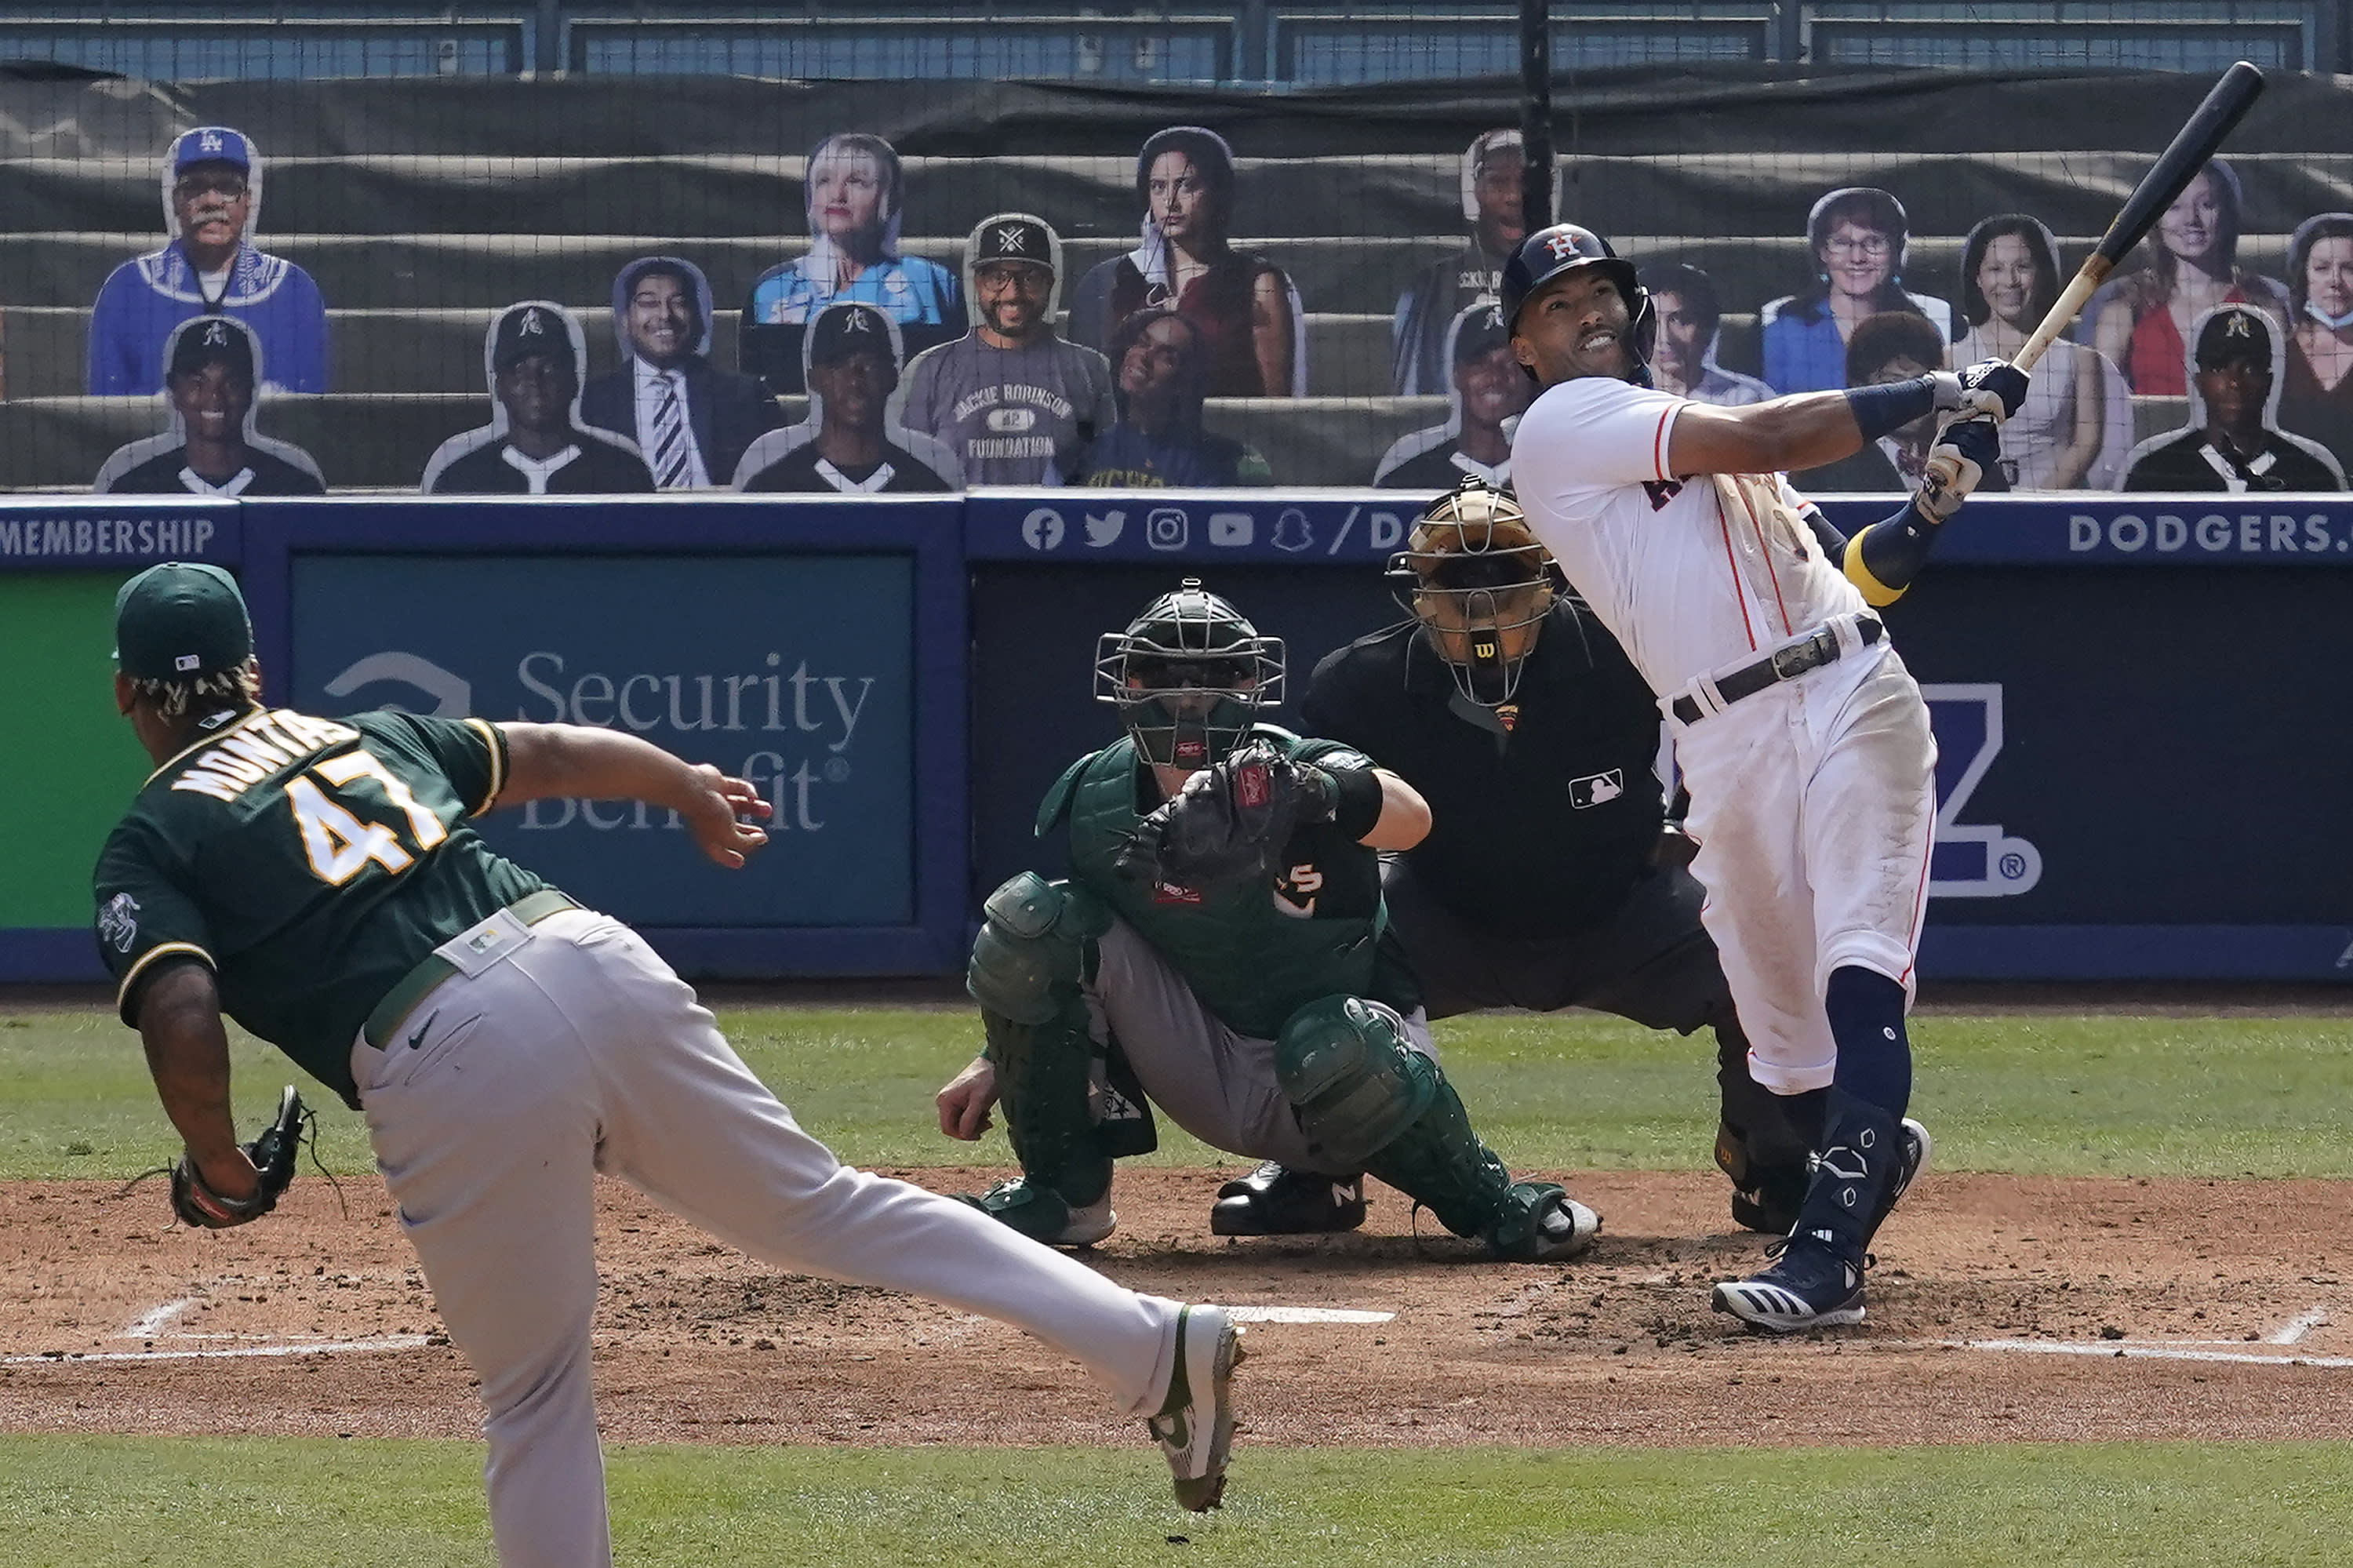 Houston Astros' Carlos Correa, right, hits a three-run home run off of Oakland Athletics pitcher Frankie Montas, left, during the fourth inning of Game 4 of a baseball American League Division Series in Los Angeles, Thursday, Oct. 8, 2020. (AP Photo/Marcio Jose Sanchez)